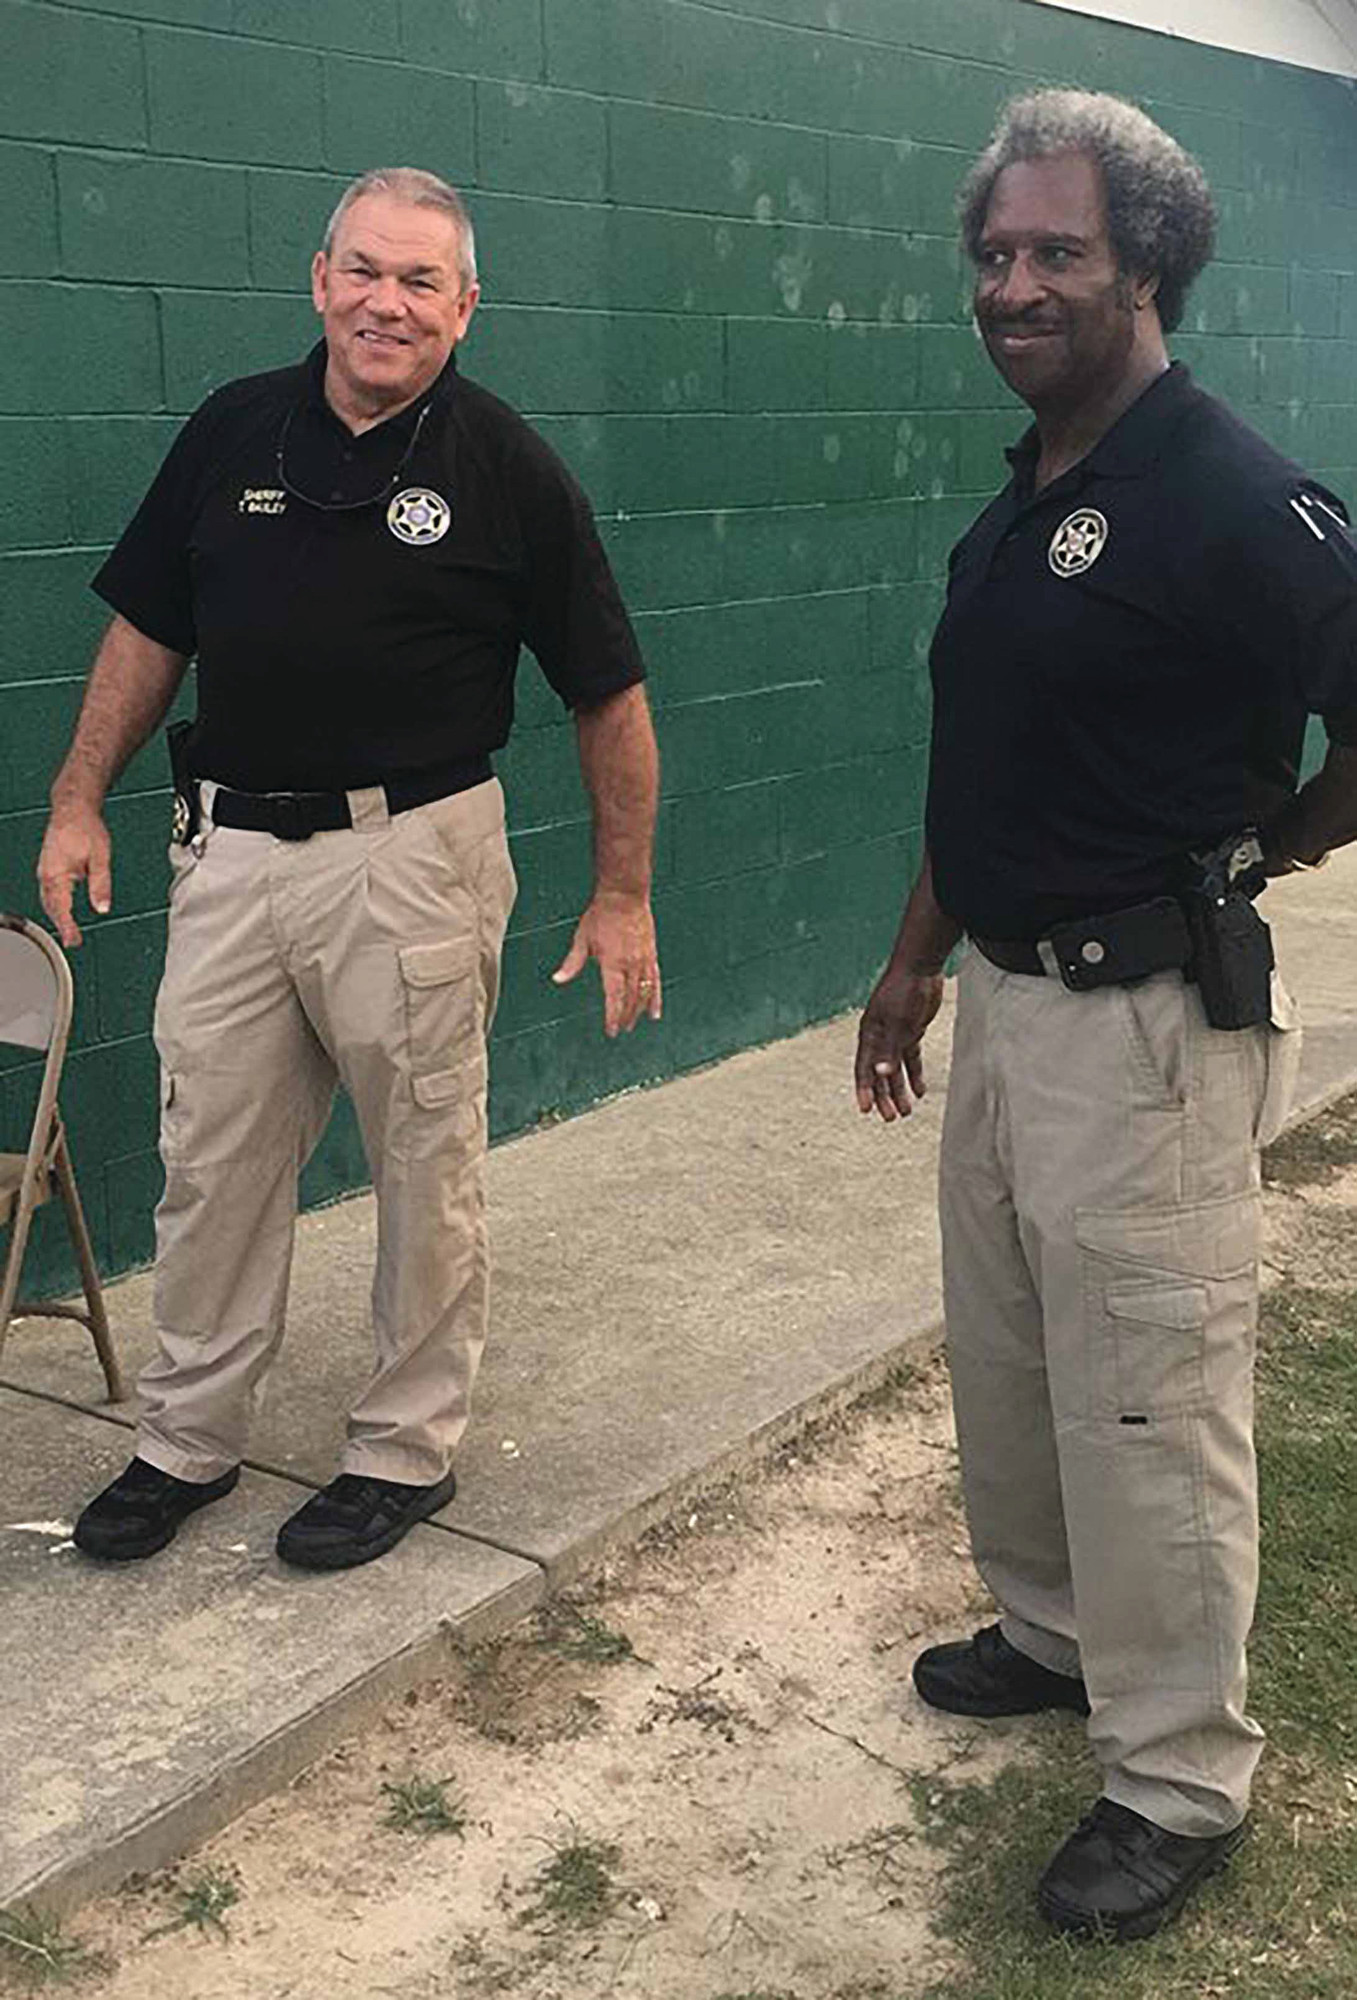 Clarendon County Sheriff Tim Baxley and Deputy Preston Stukes were on hand for Tuesday's National Night Out at J.C. Britton Park.